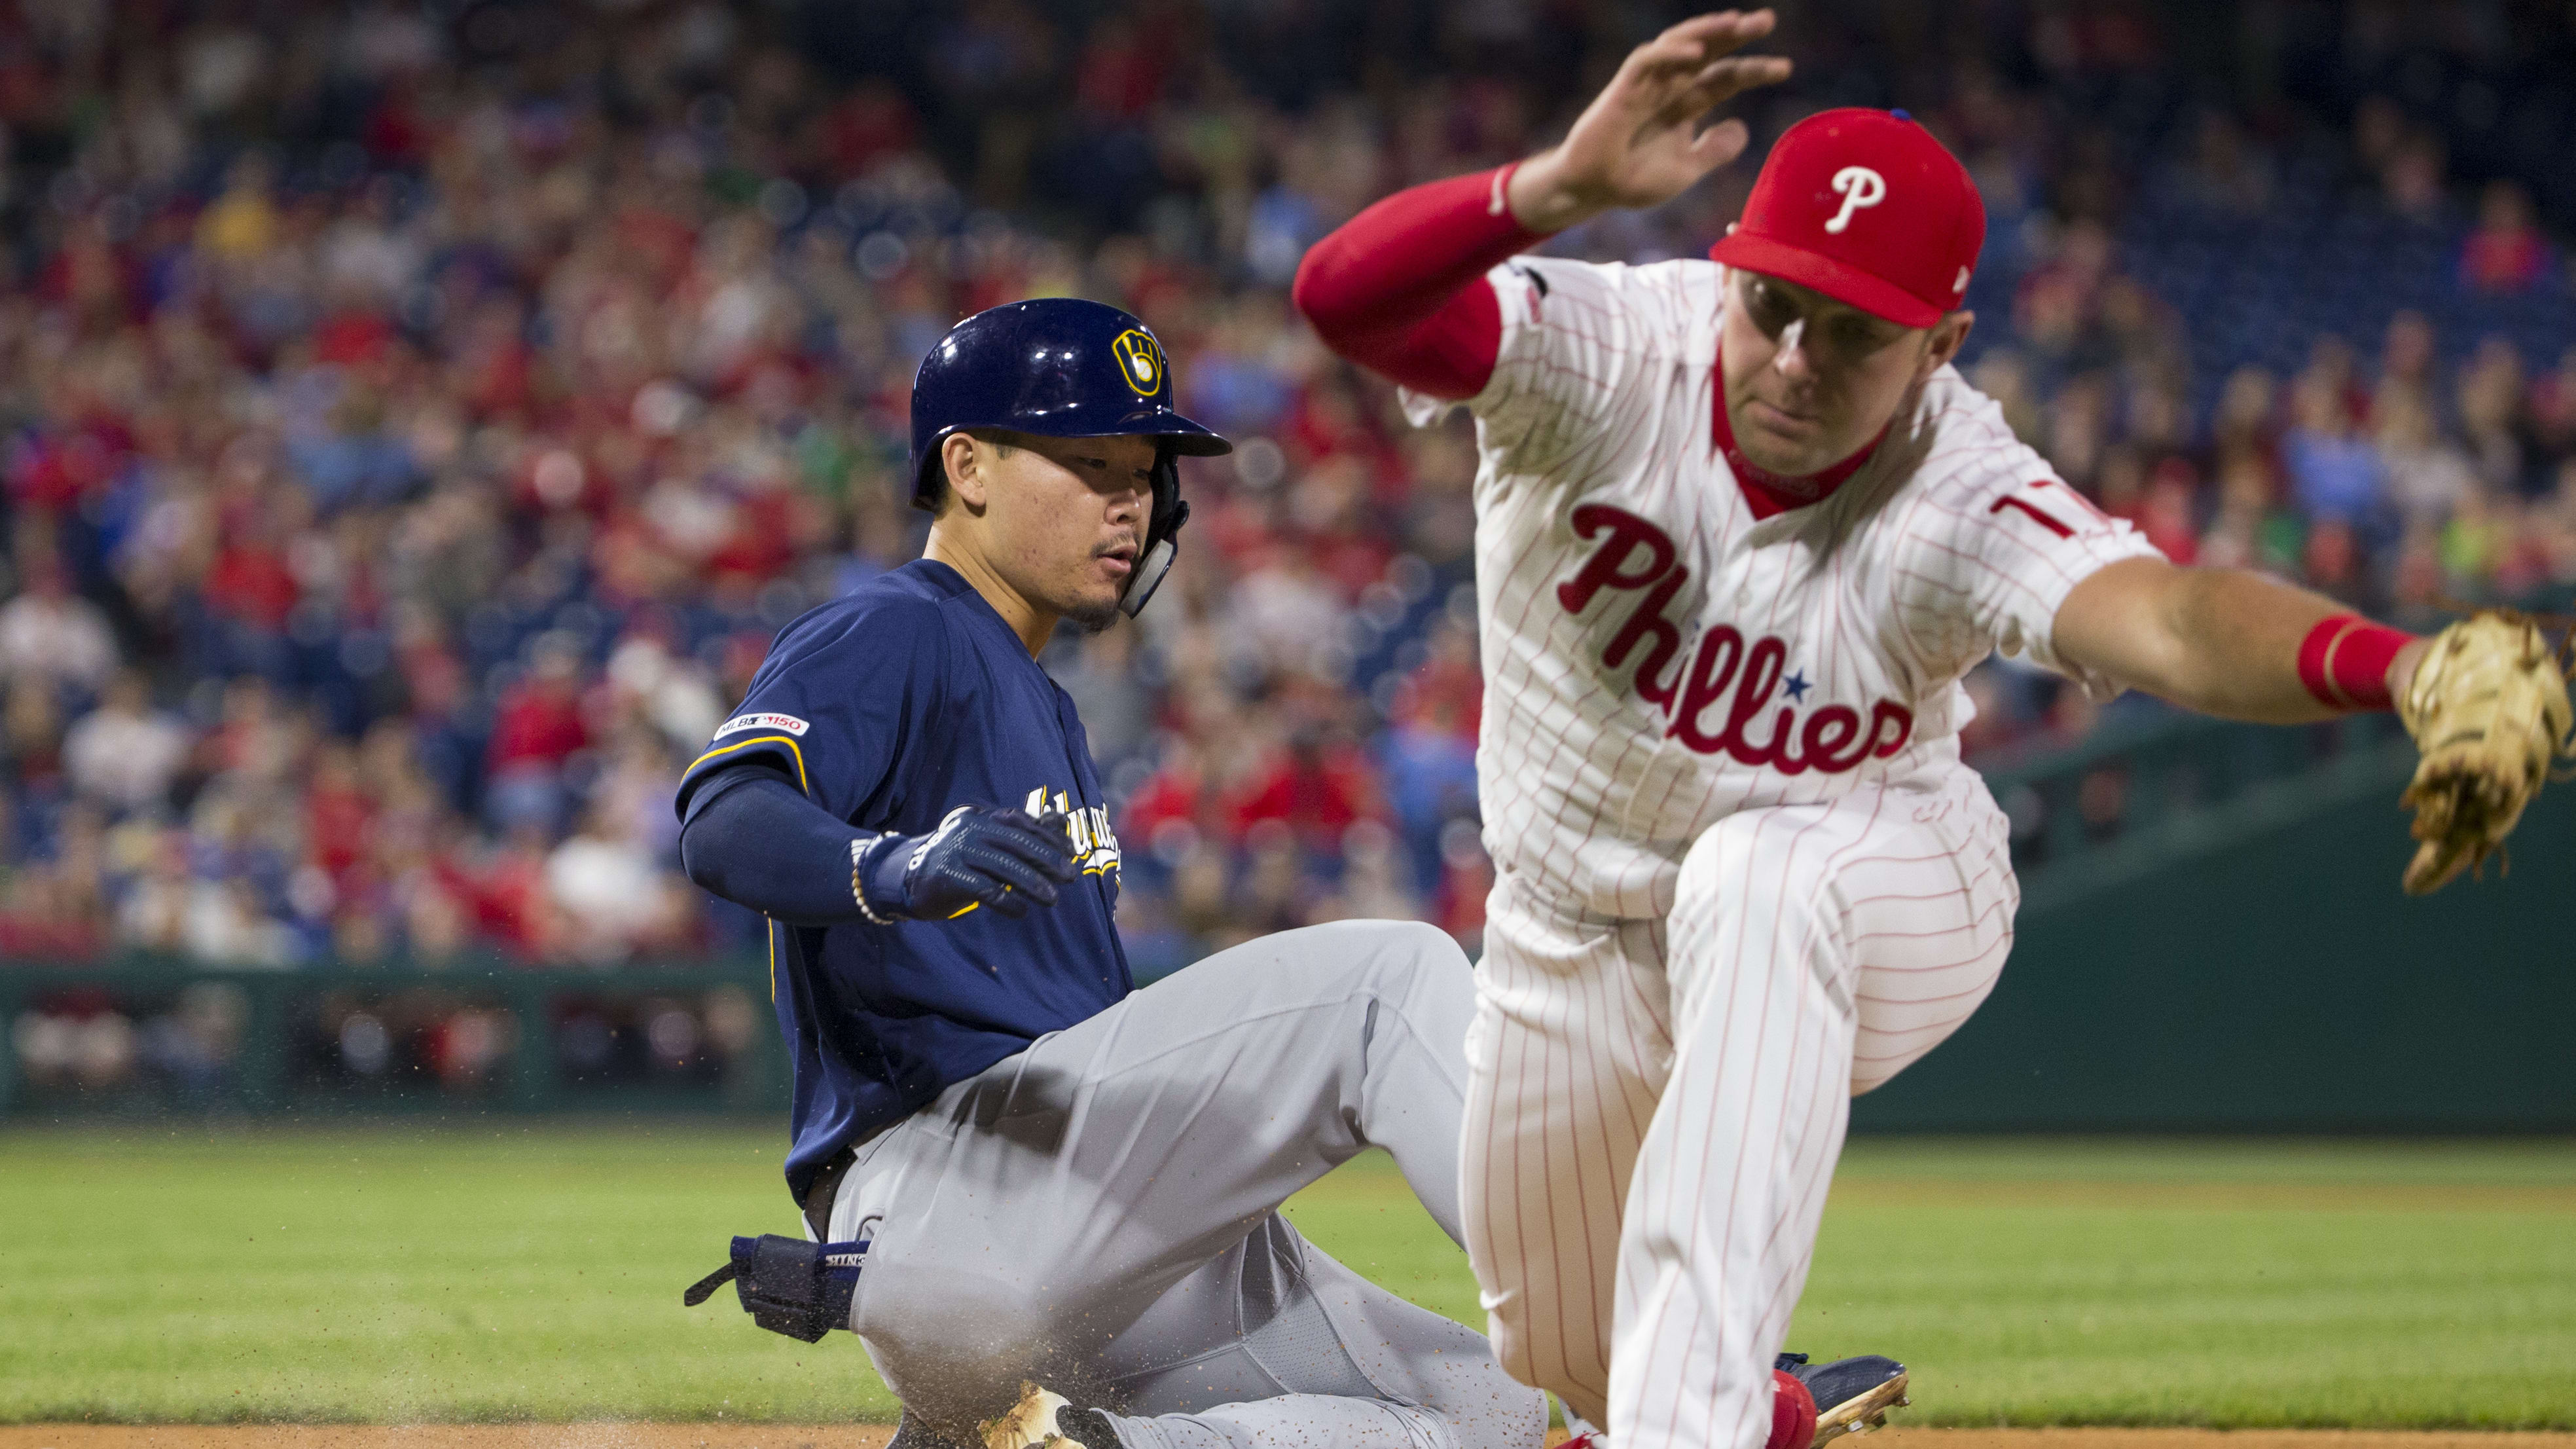 PHILADELPHIA, PA - MAY 15: Rhys Hoskins #17 of the Philadelphia Phillies forces out Keston Hiura #18 of the Milwaukee Brewers as he attempts to slide into first base in the top of the fifth inning at Citizens Bank Park on May 15, 2019 in Philadelphia, Pennsylvania. The Brewers defeated the Phillies 5-2. (Photo by Mitchell Leff/Getty Images)